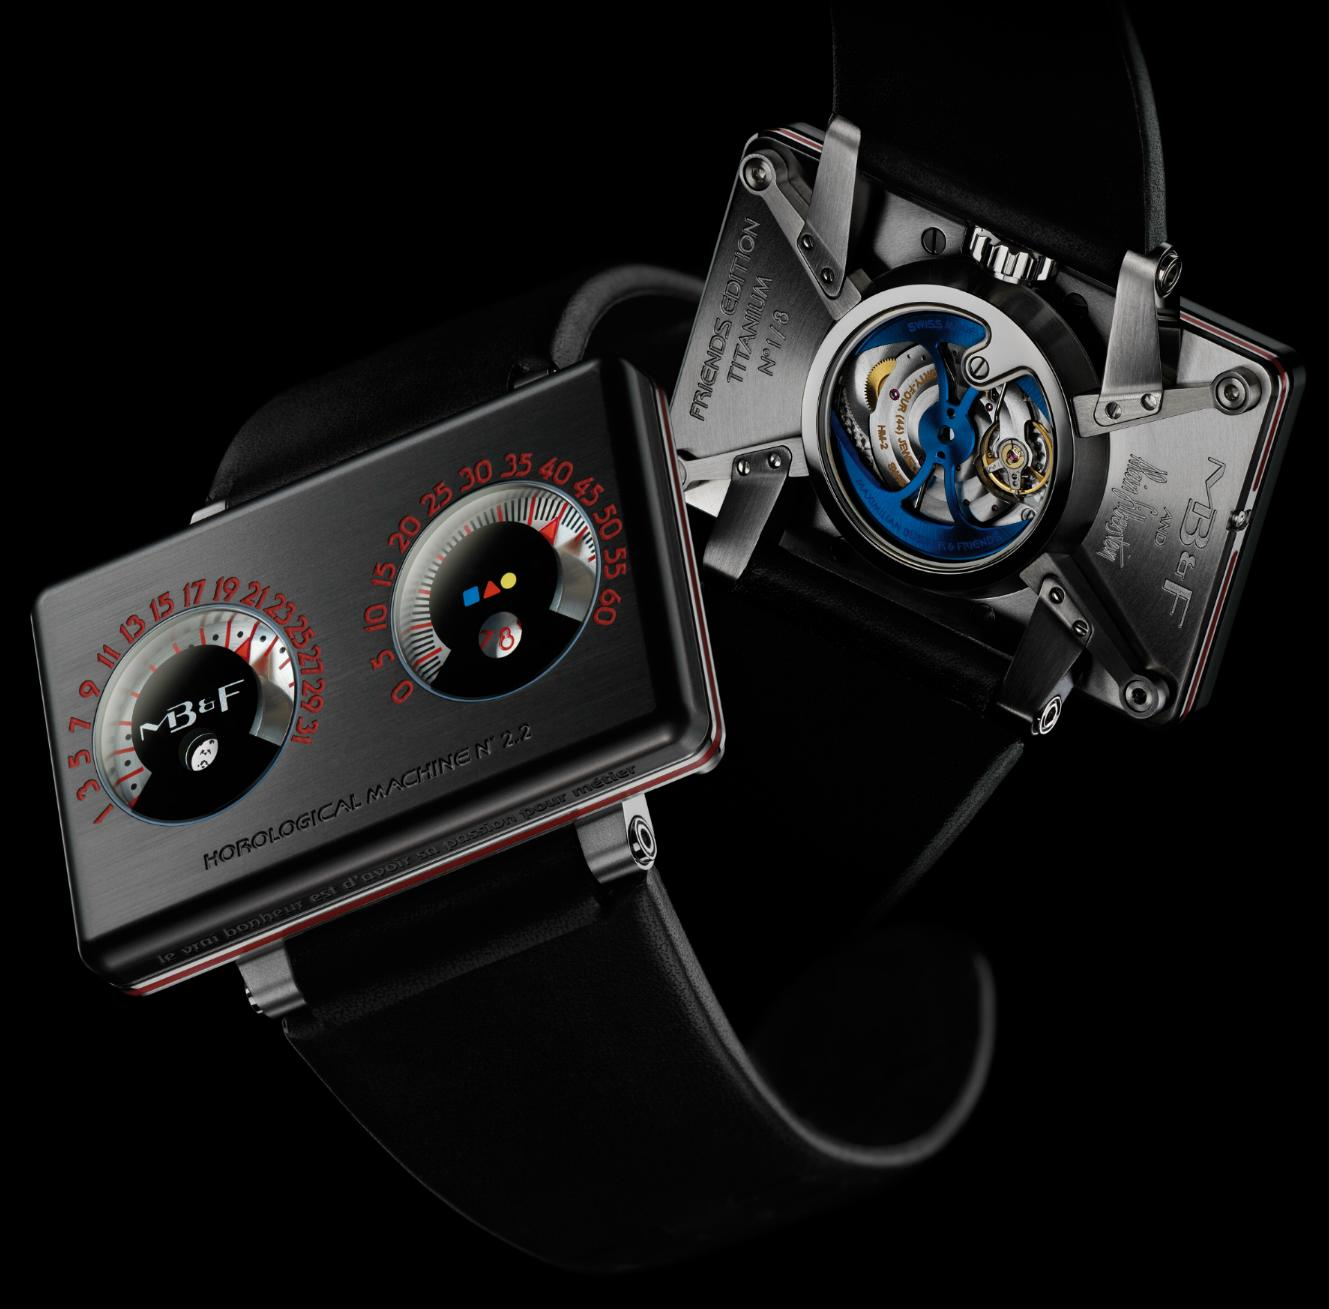 MB&F and Alain Silberstein – Horological Machine No. 2 HM2